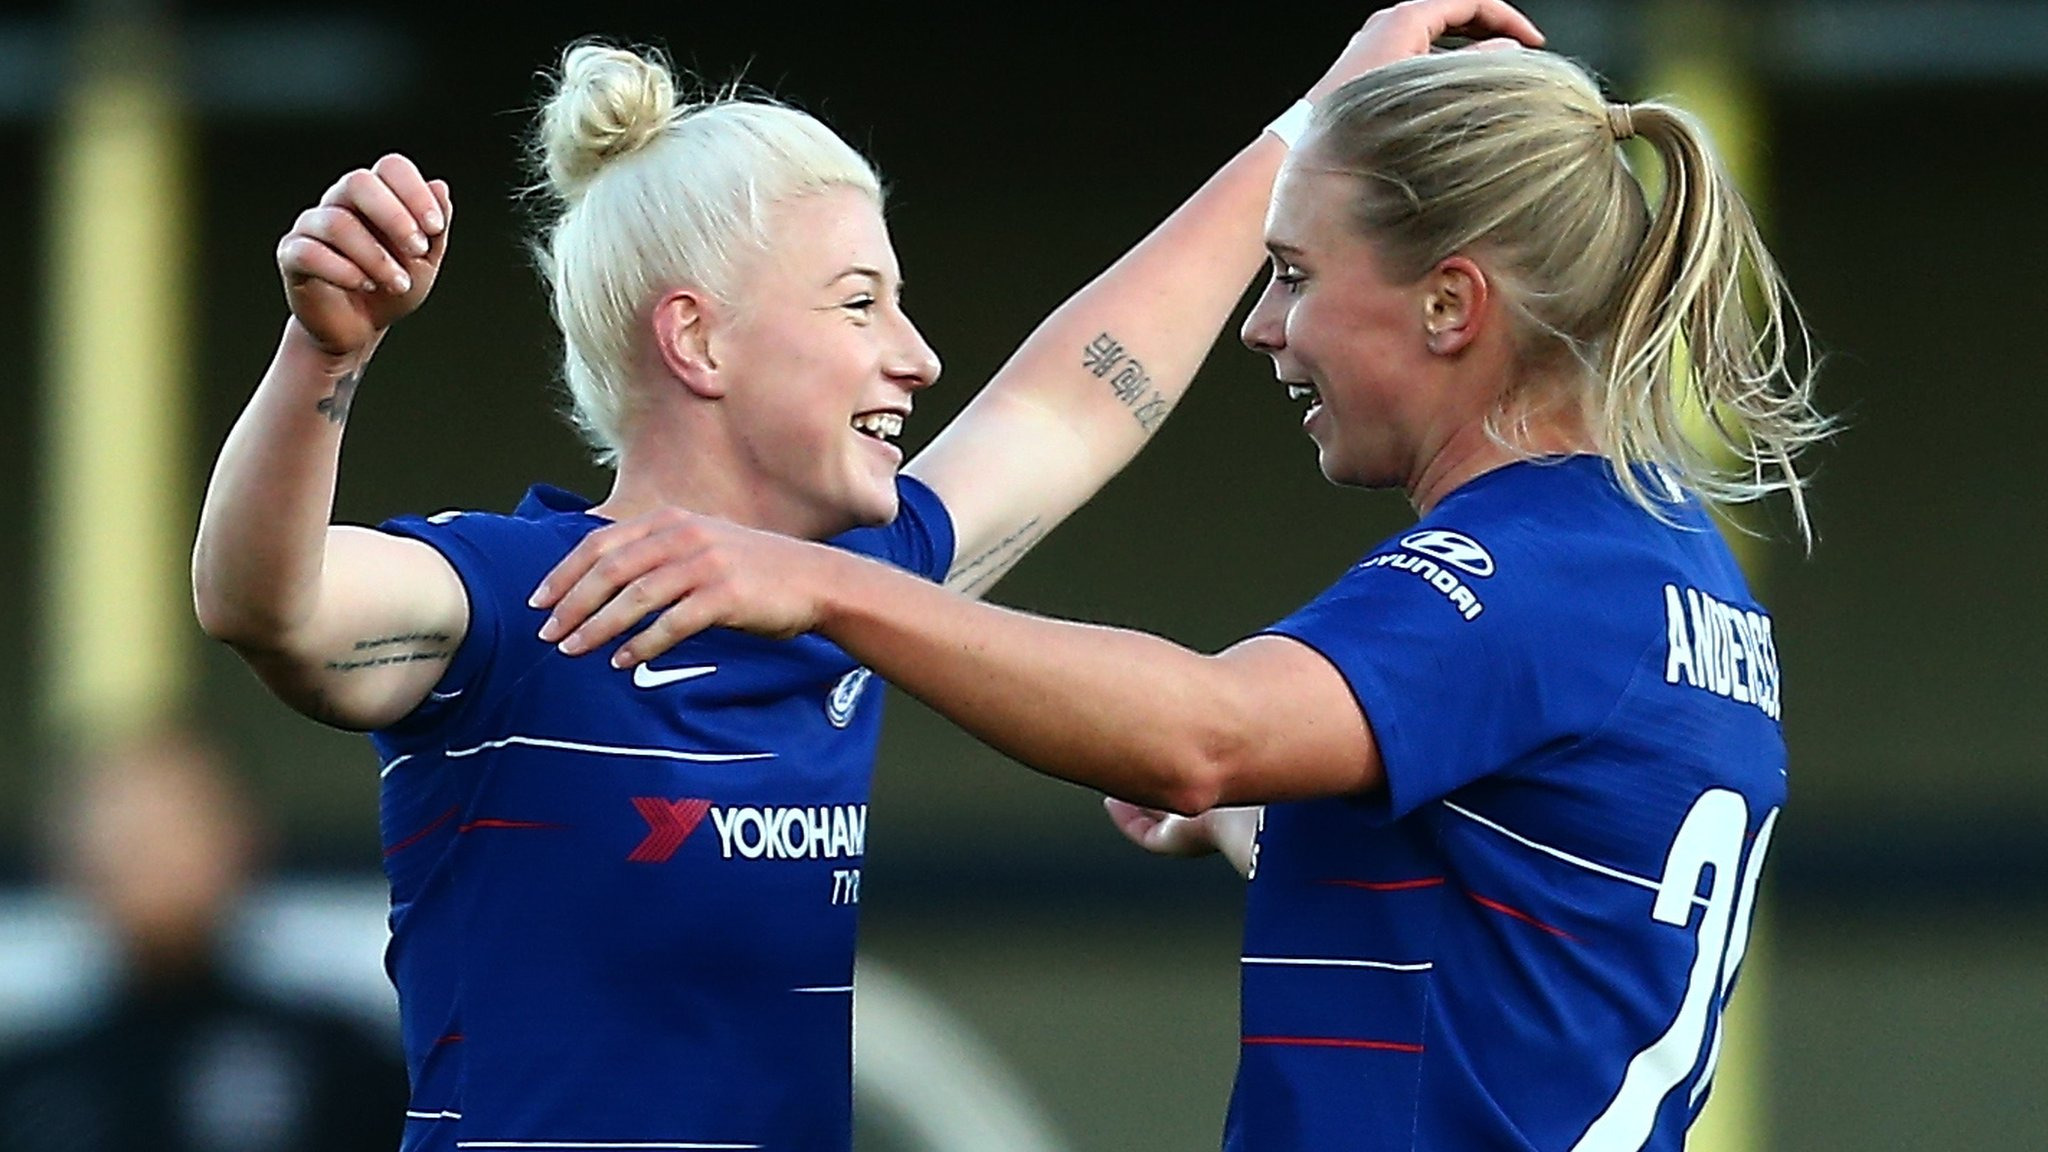 Chelsea Women 5-0 Yeovil Town Ladies: Five different scorers for Blues